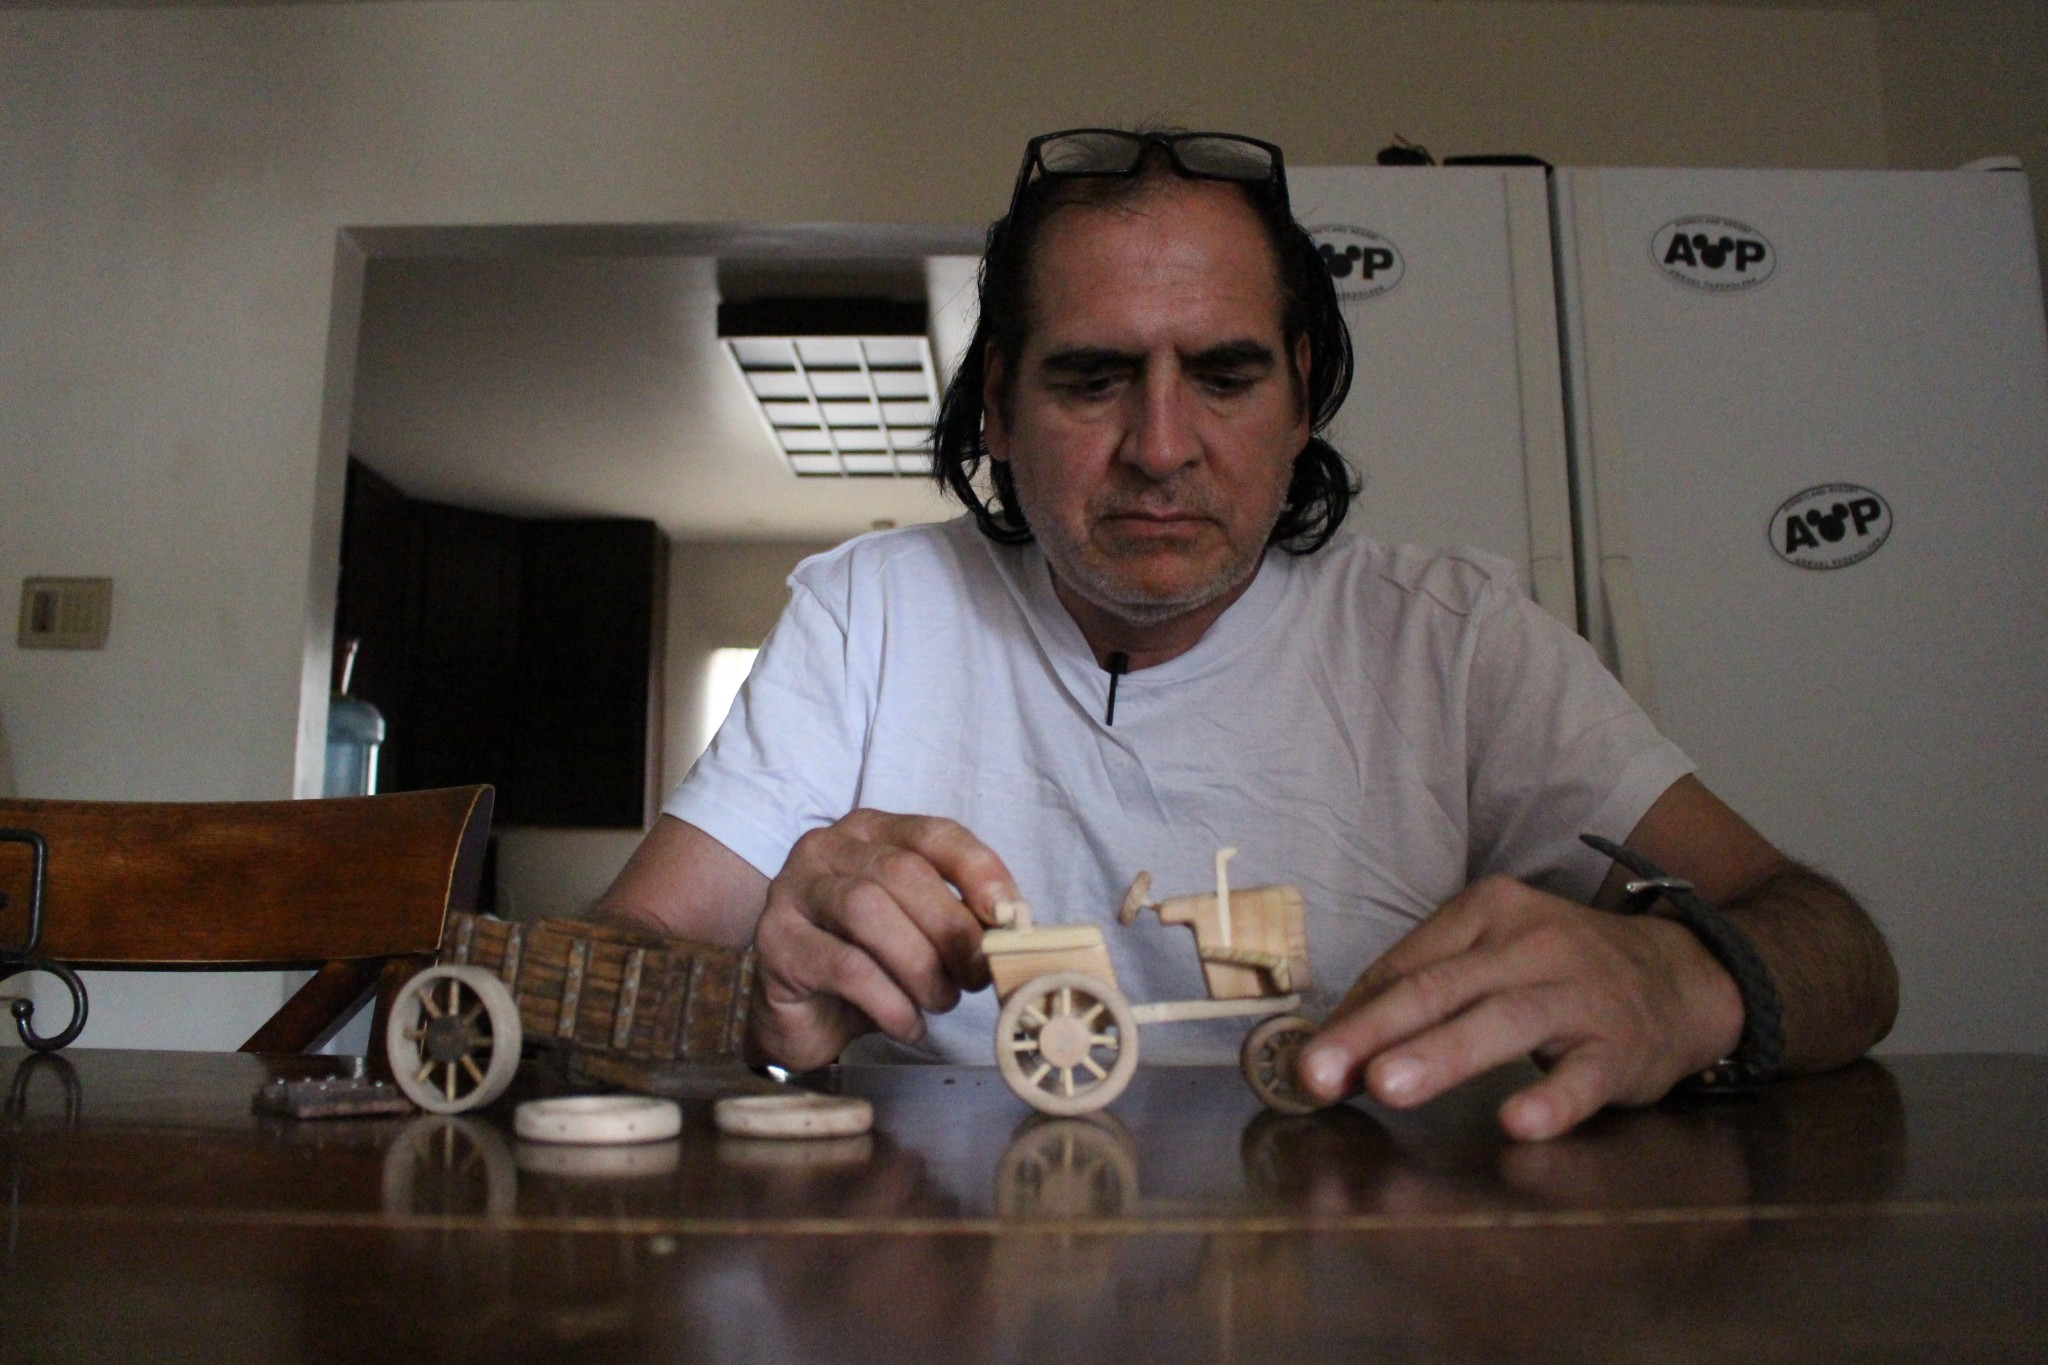 Alex Sanchez makes small wooden toys, which he gives to his doctors. (Photo: Karen Foshay)